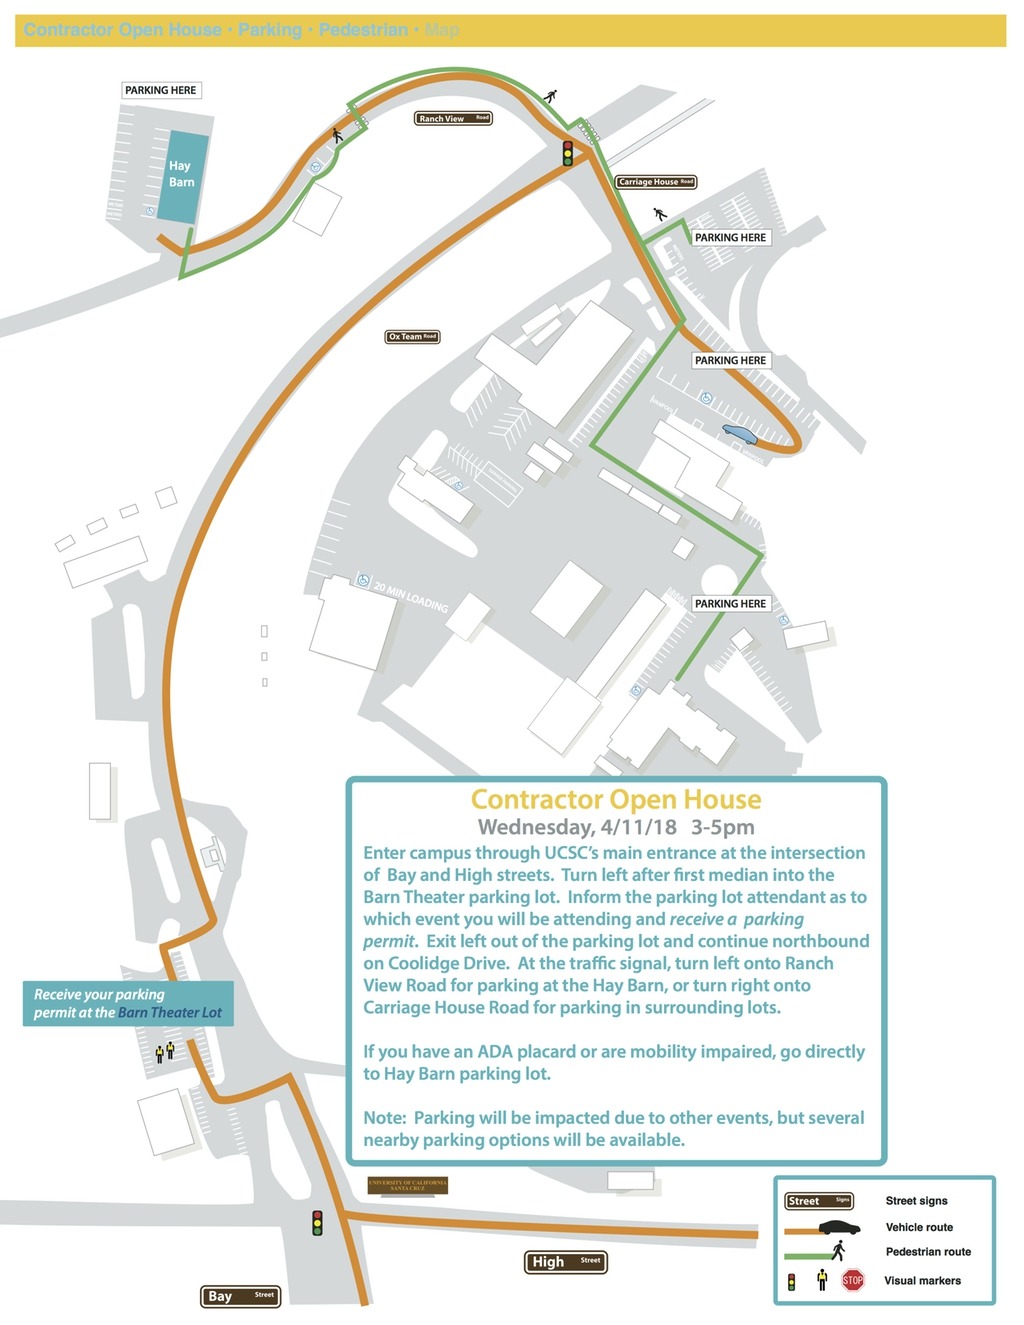 UCSC Open House Map